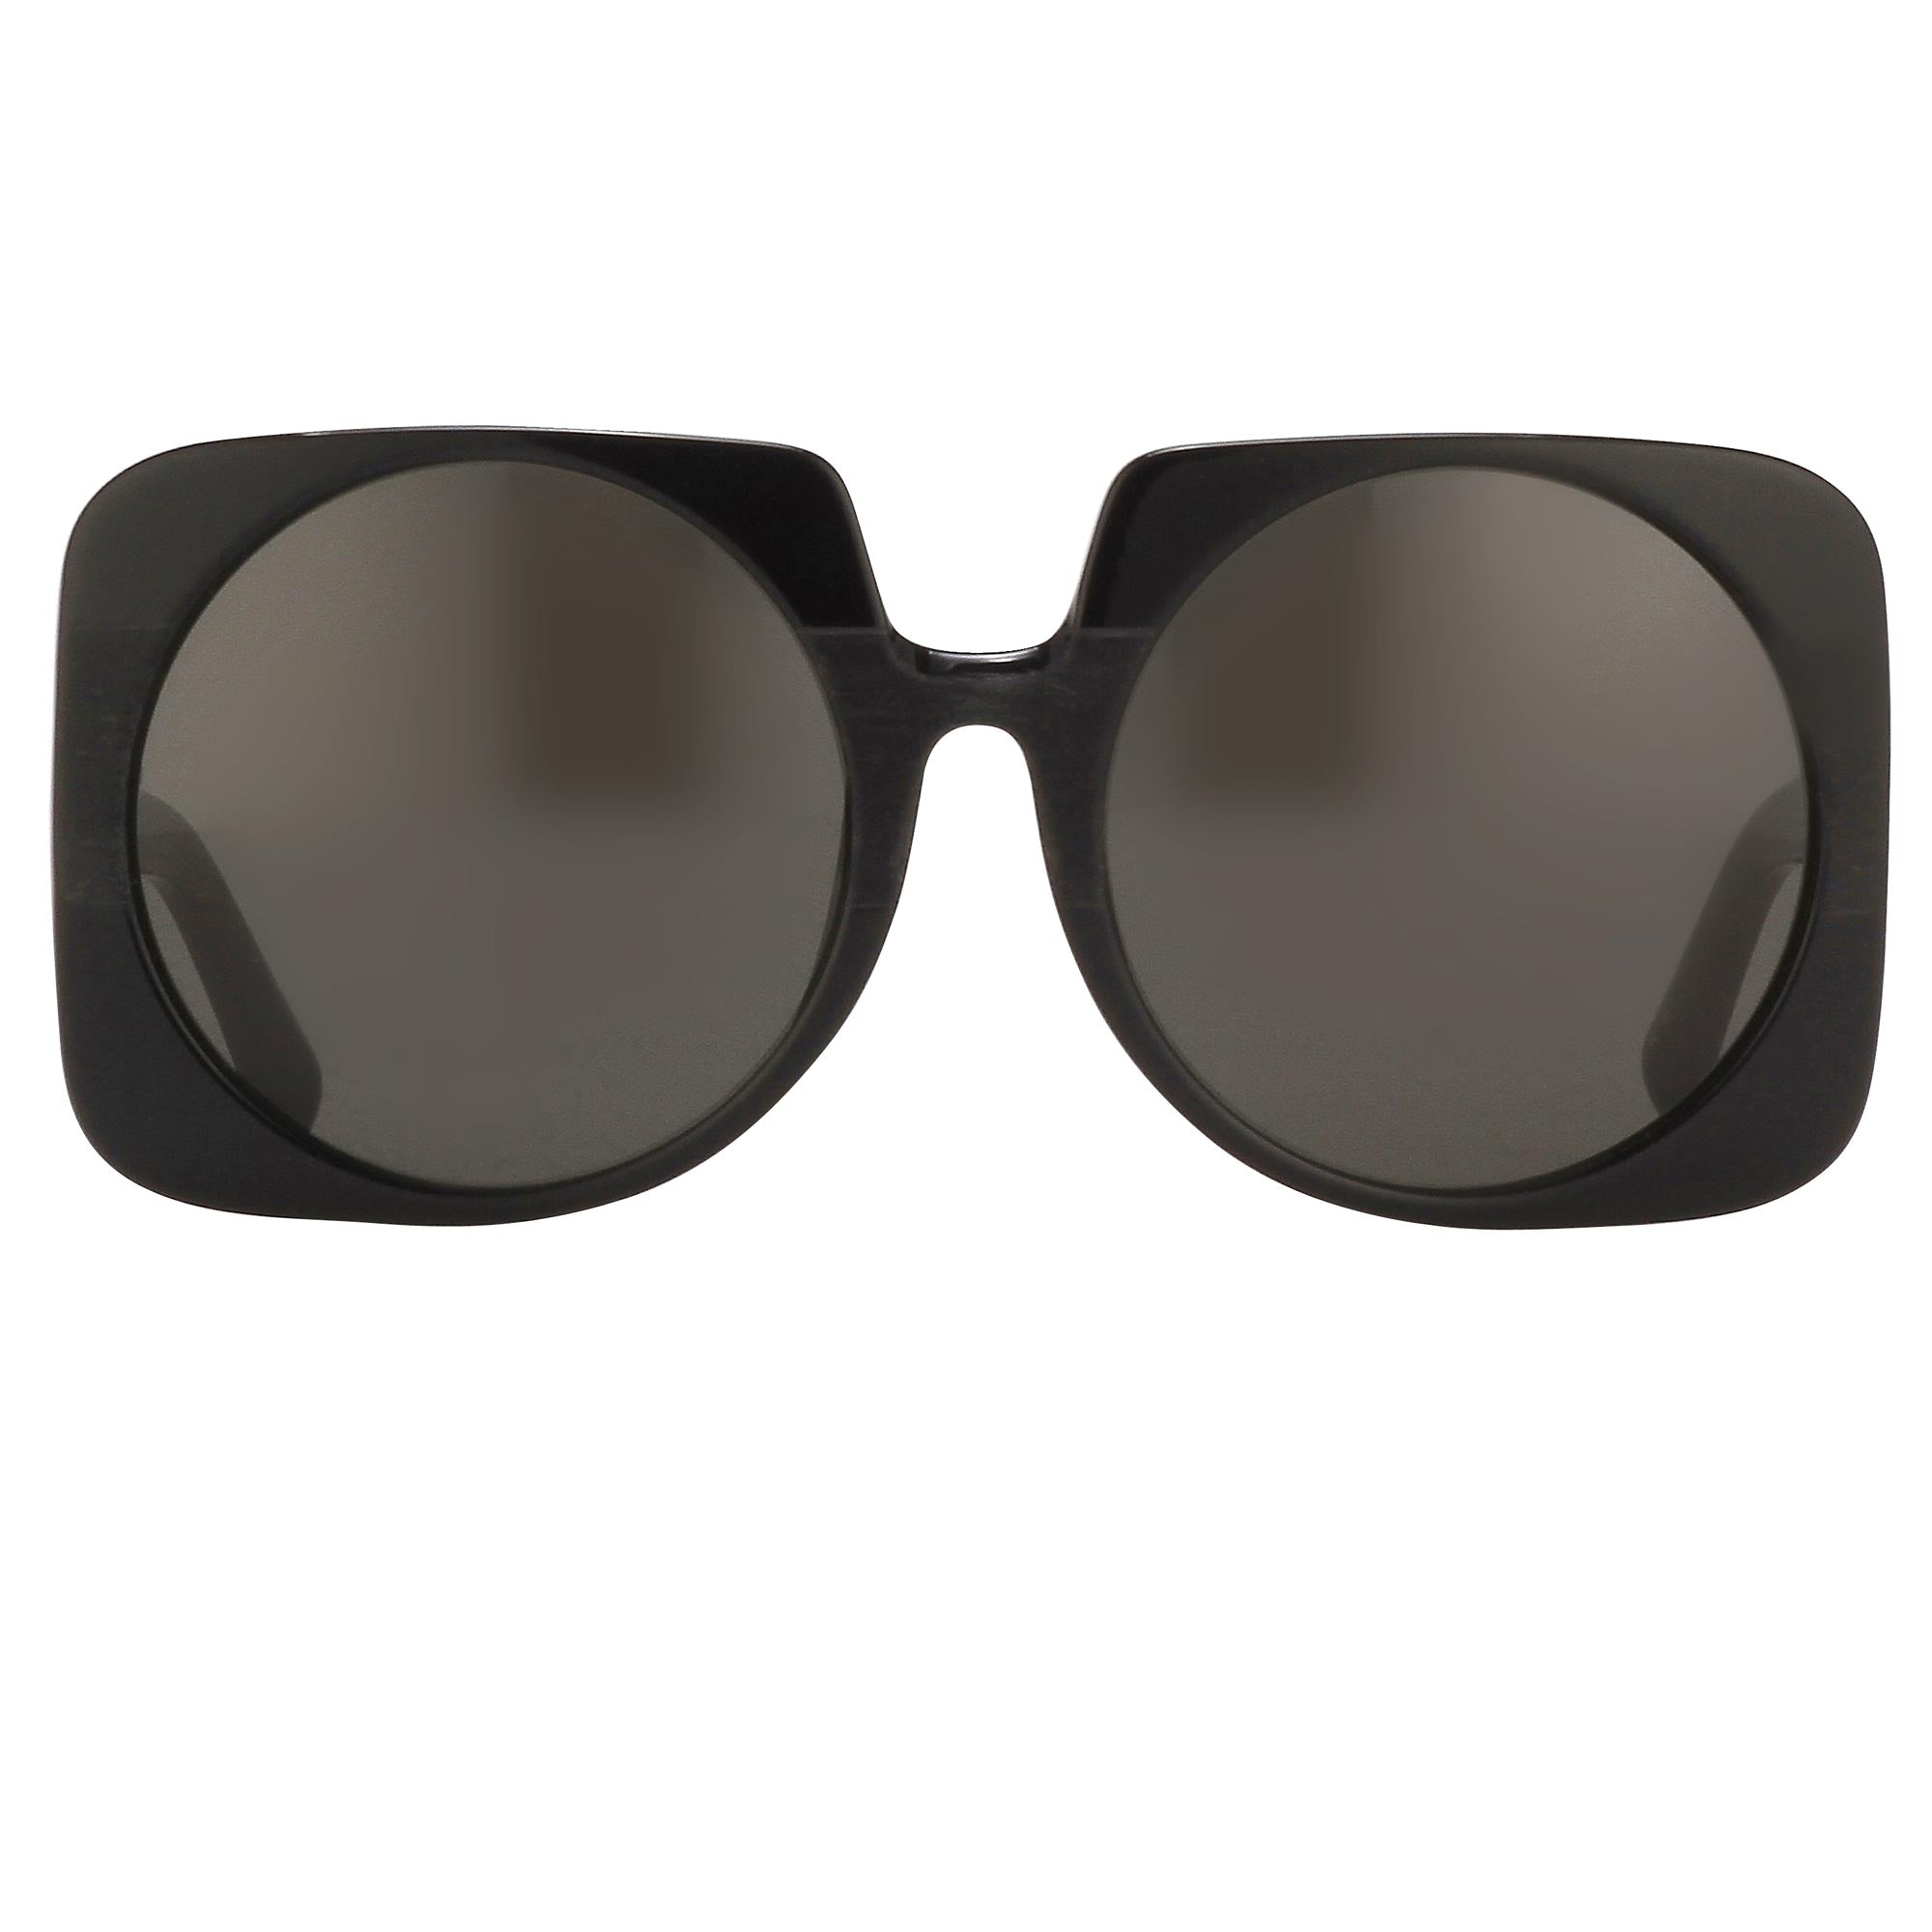 Prabal Gurung Sunglasses Female Square Shiny Black Category 3 Black Lenses PG20C1SUN - Watches & Crystals